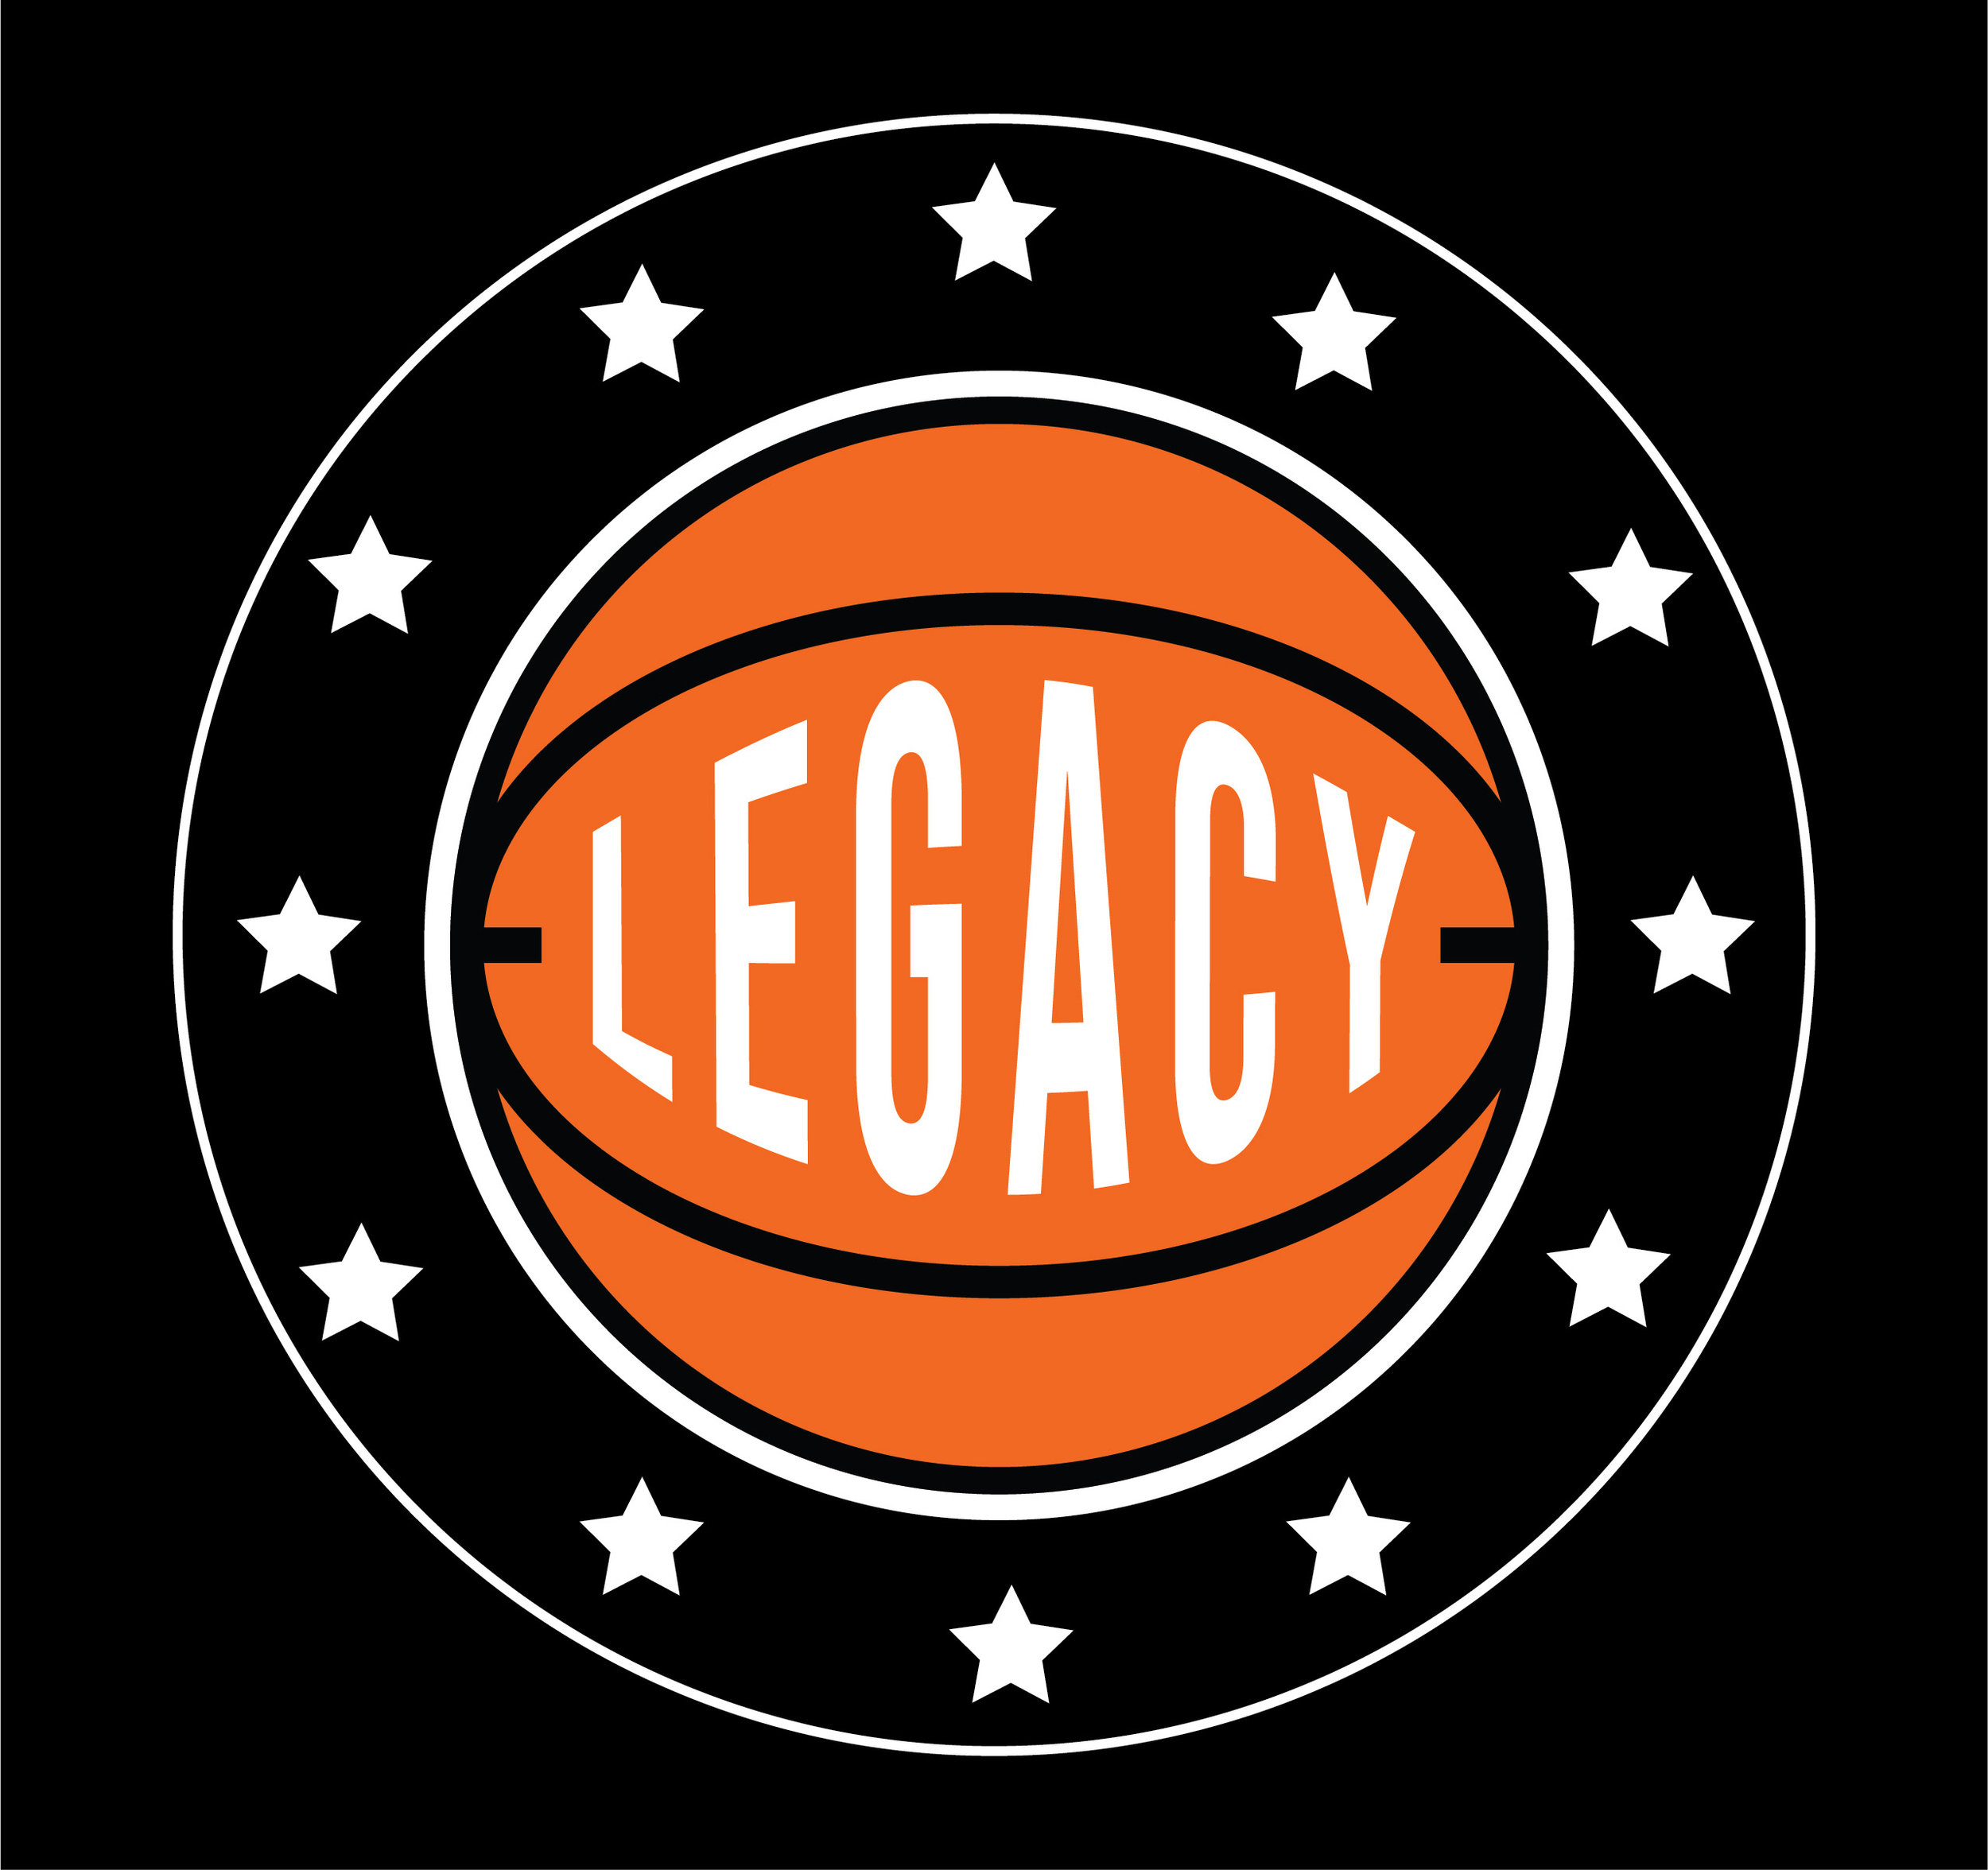 IF YOU ARE LOOKING FOR SKILLS TRAINING, CHECK OUT  LEGACY BASKETBALL TRAINING .